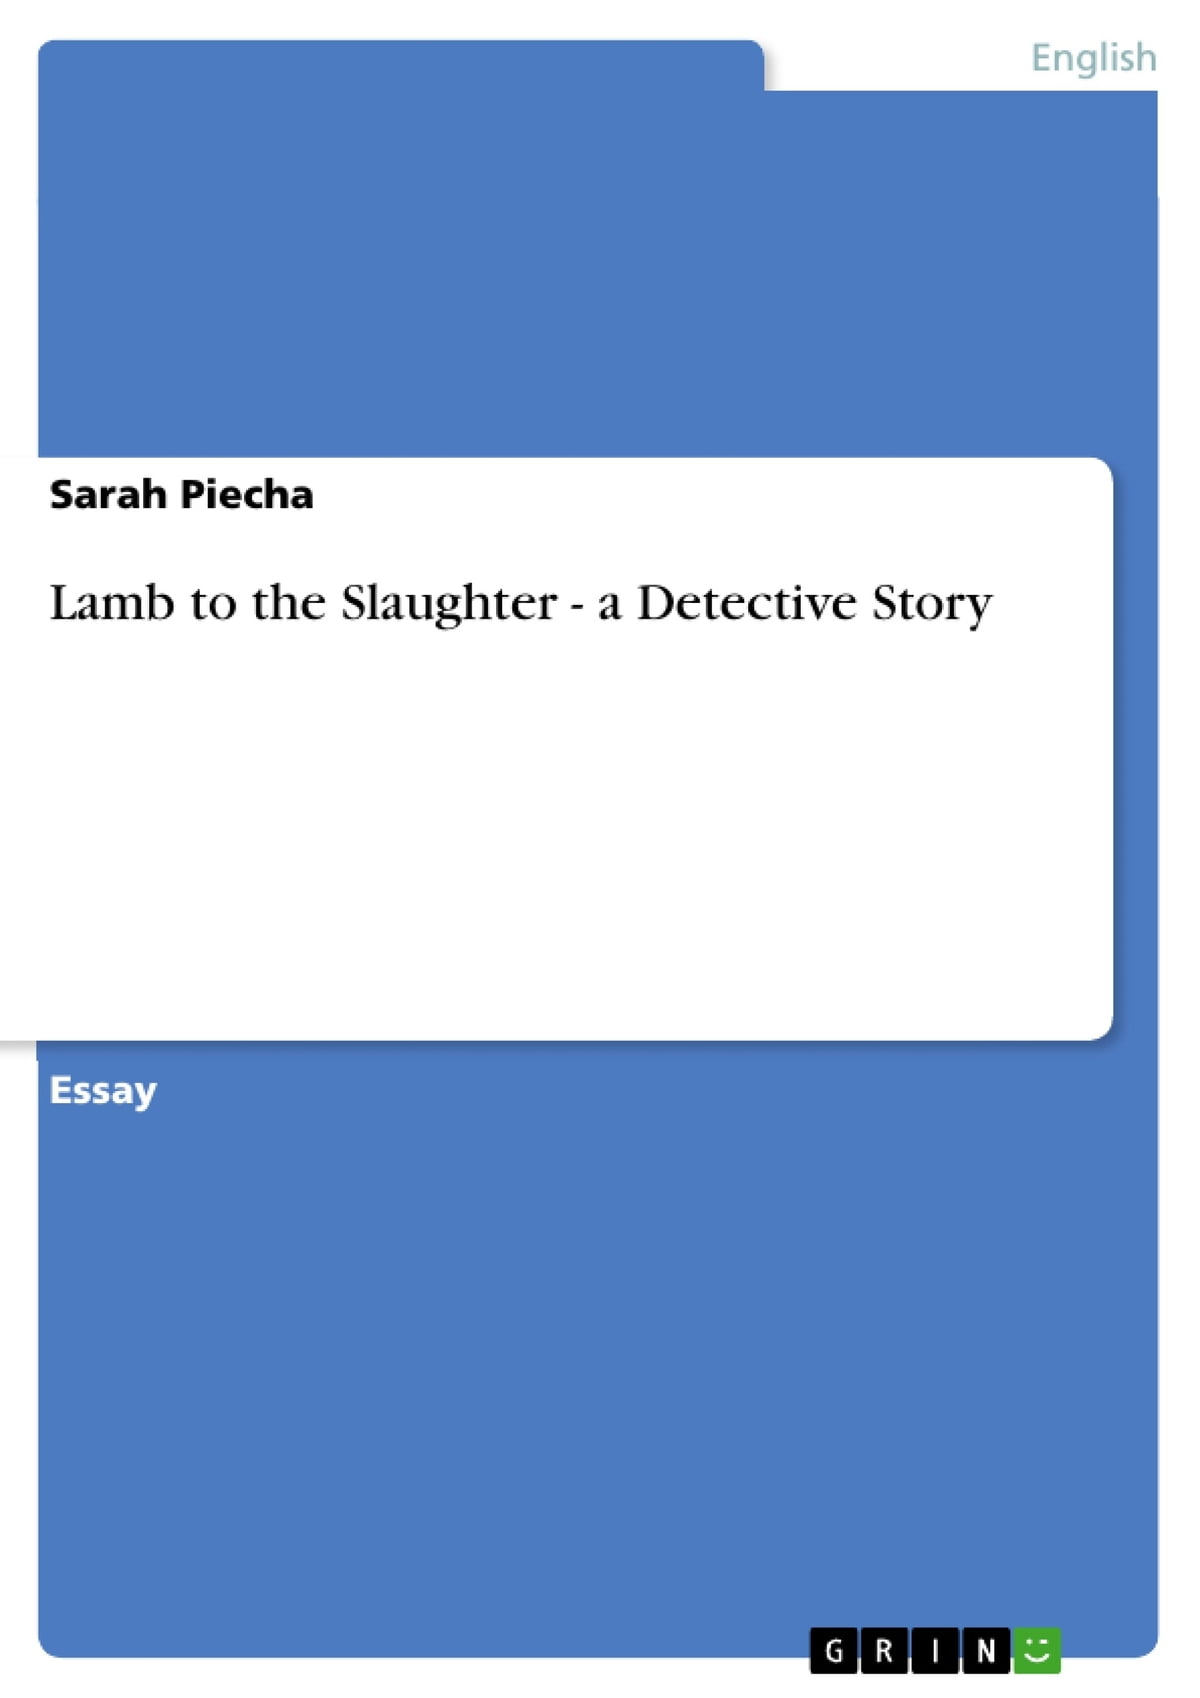 Lamb To The Slaughter  A Detective Story Ebook By Sarah Piecha  Lamb To The Slaughter  A Detective Story Ebook By Sarah Piecha     Rakuten Kobo